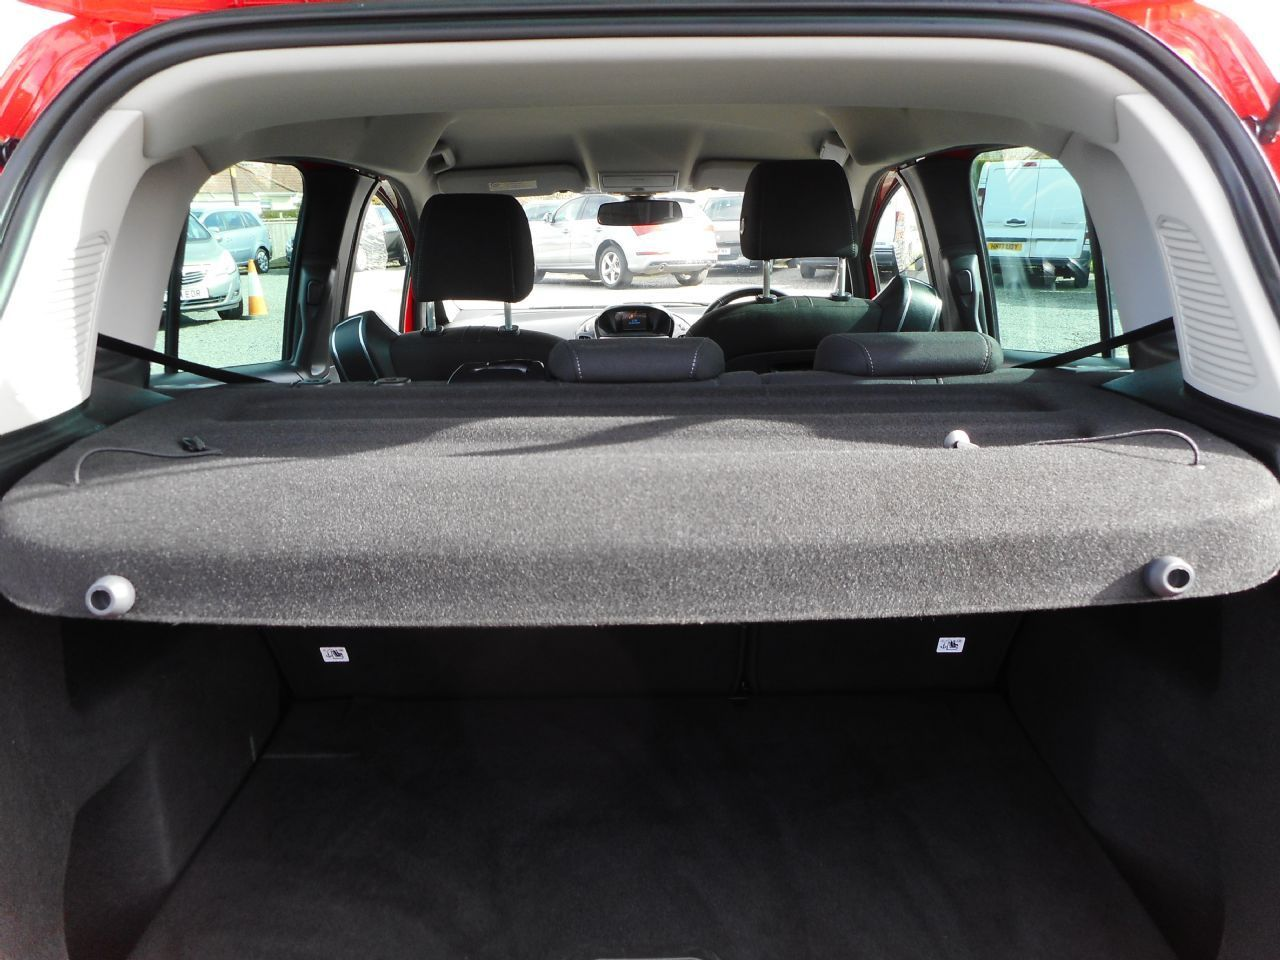 FORD B-MAX 1.4 90PS Zetec (2013) - Picture 14